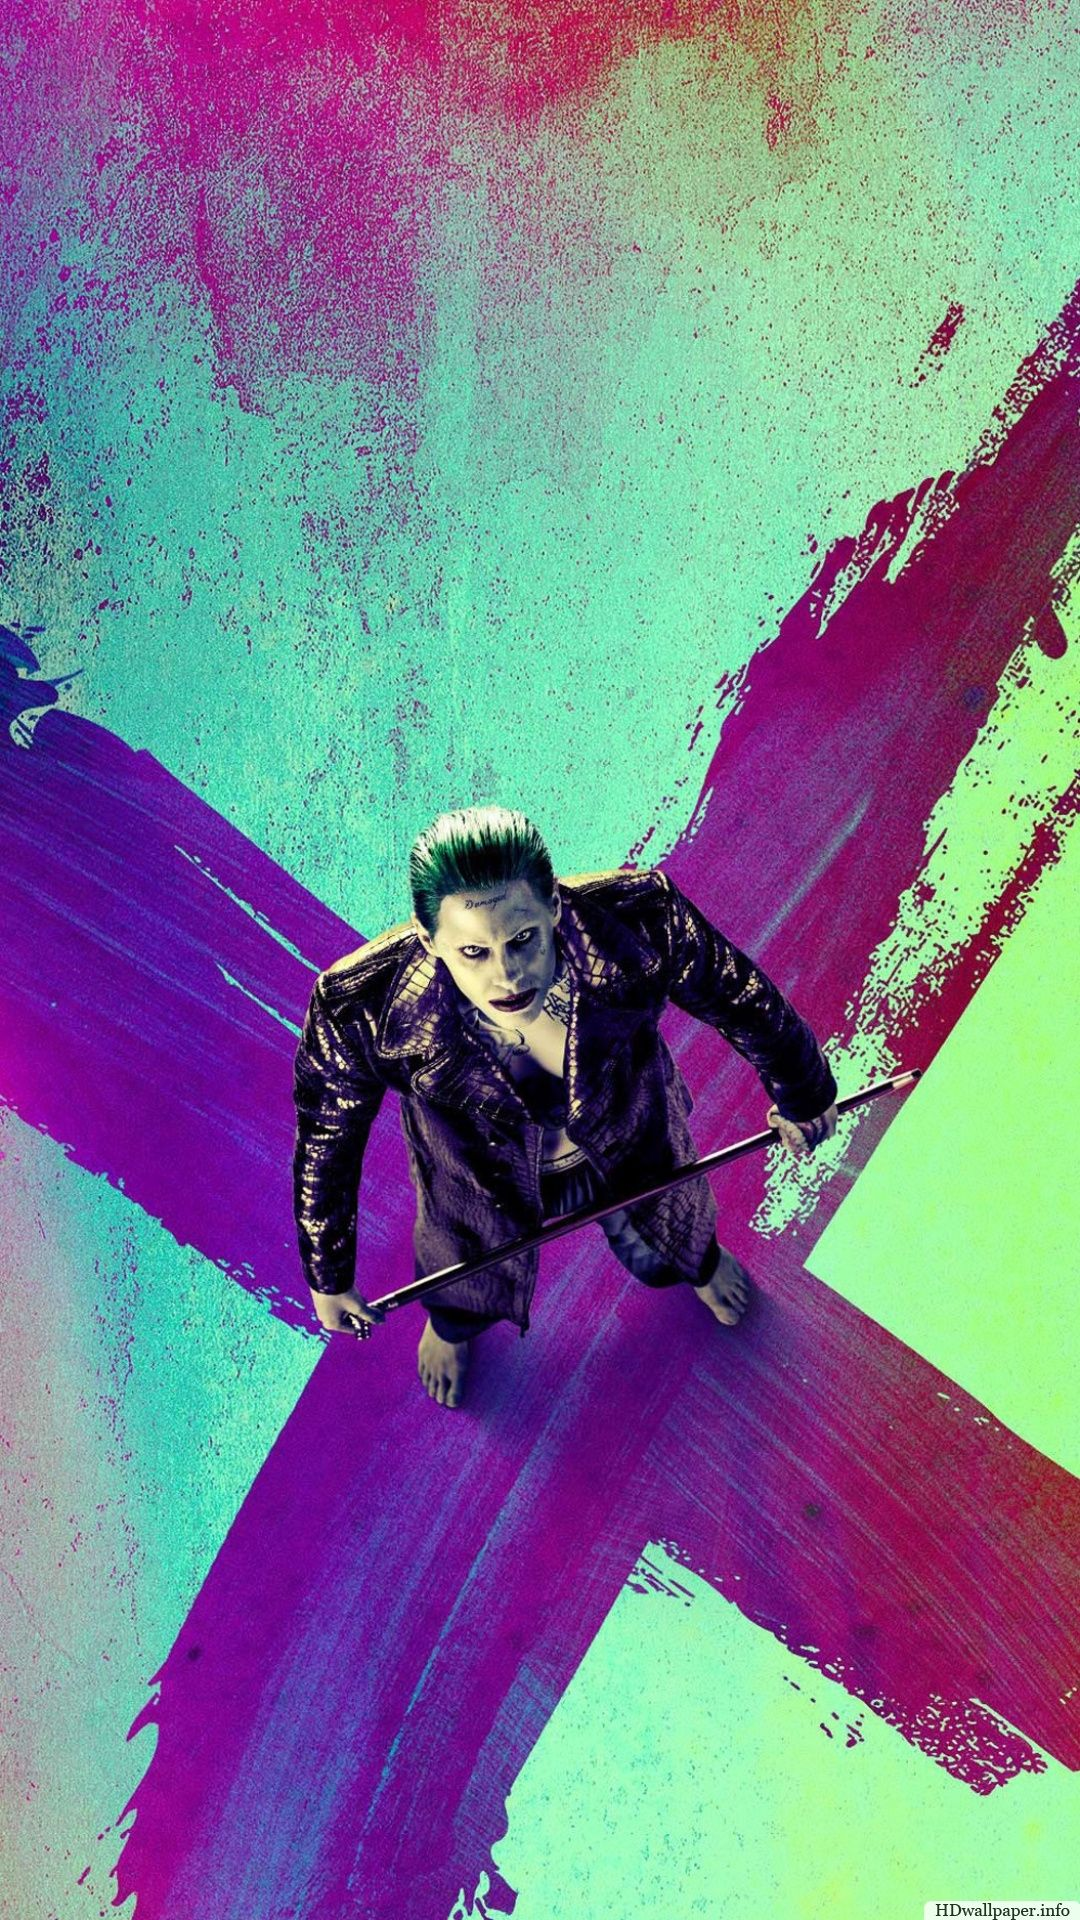 Suicide squad wallpaper android - Harley quinn hd wallpapers for android ...